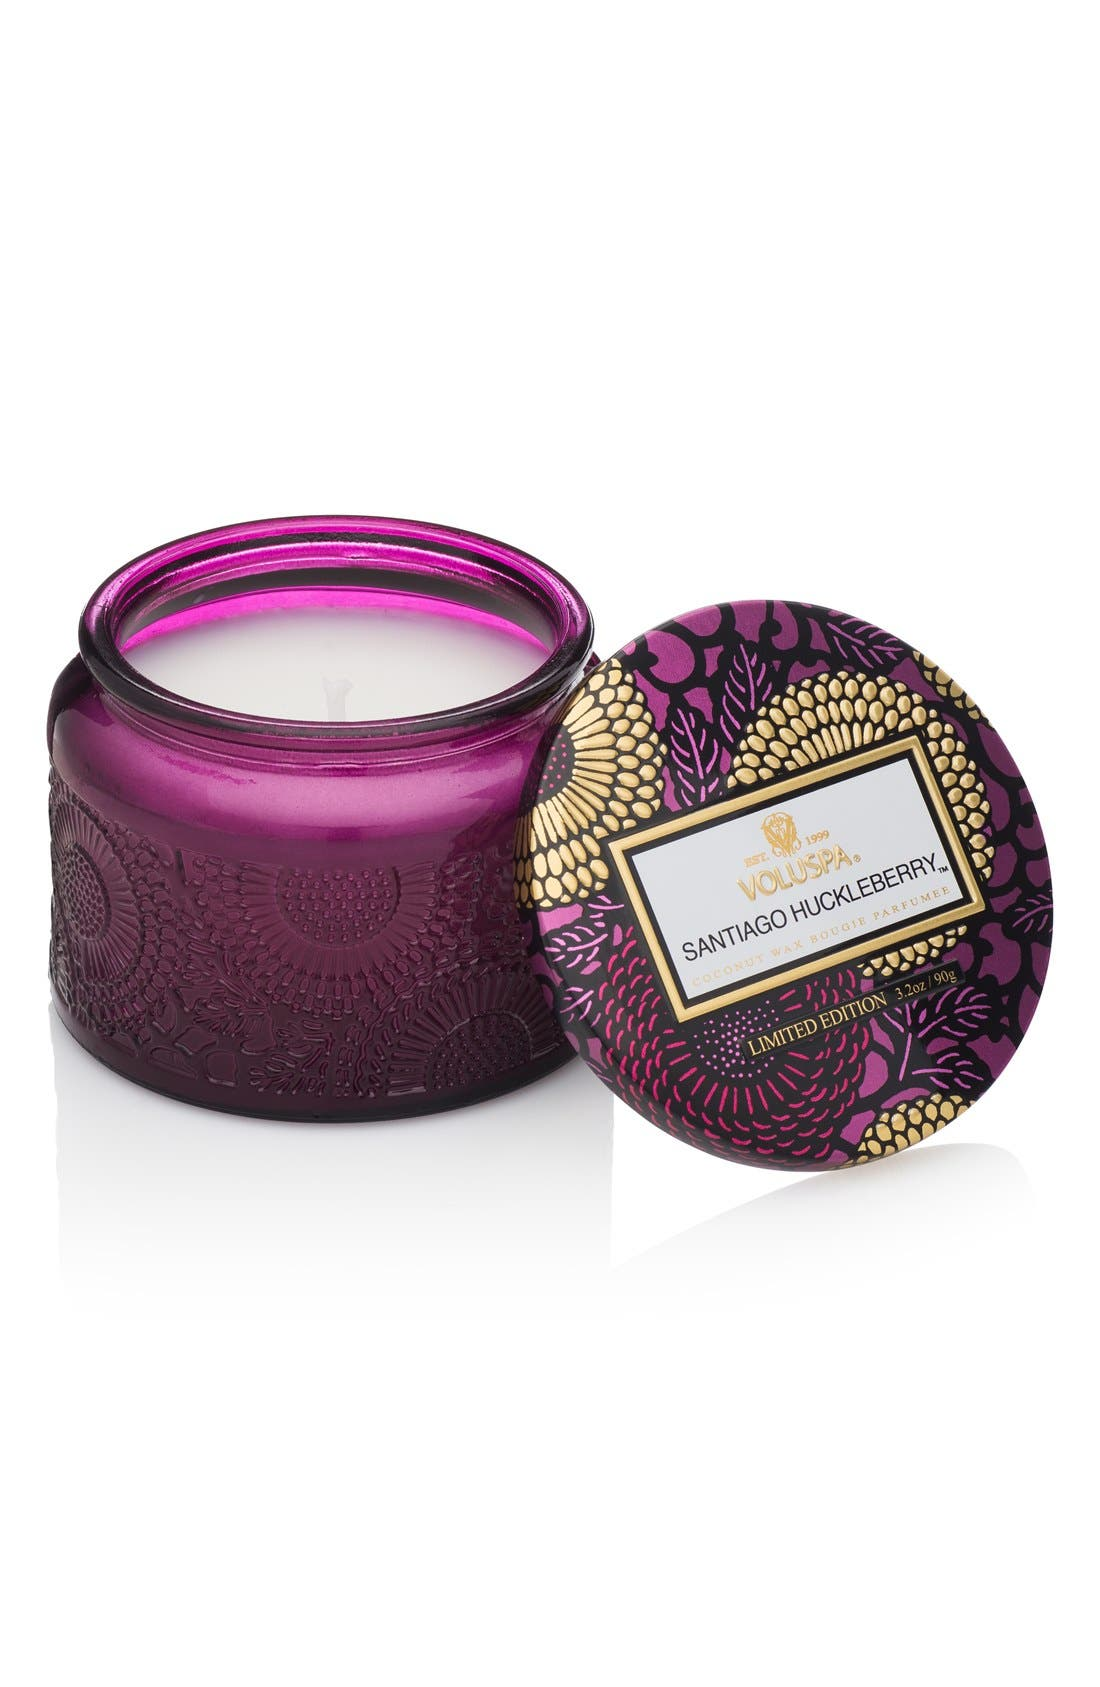 Voluspa Japonica Santiago Huckleberry Petite Colored Jar Candle